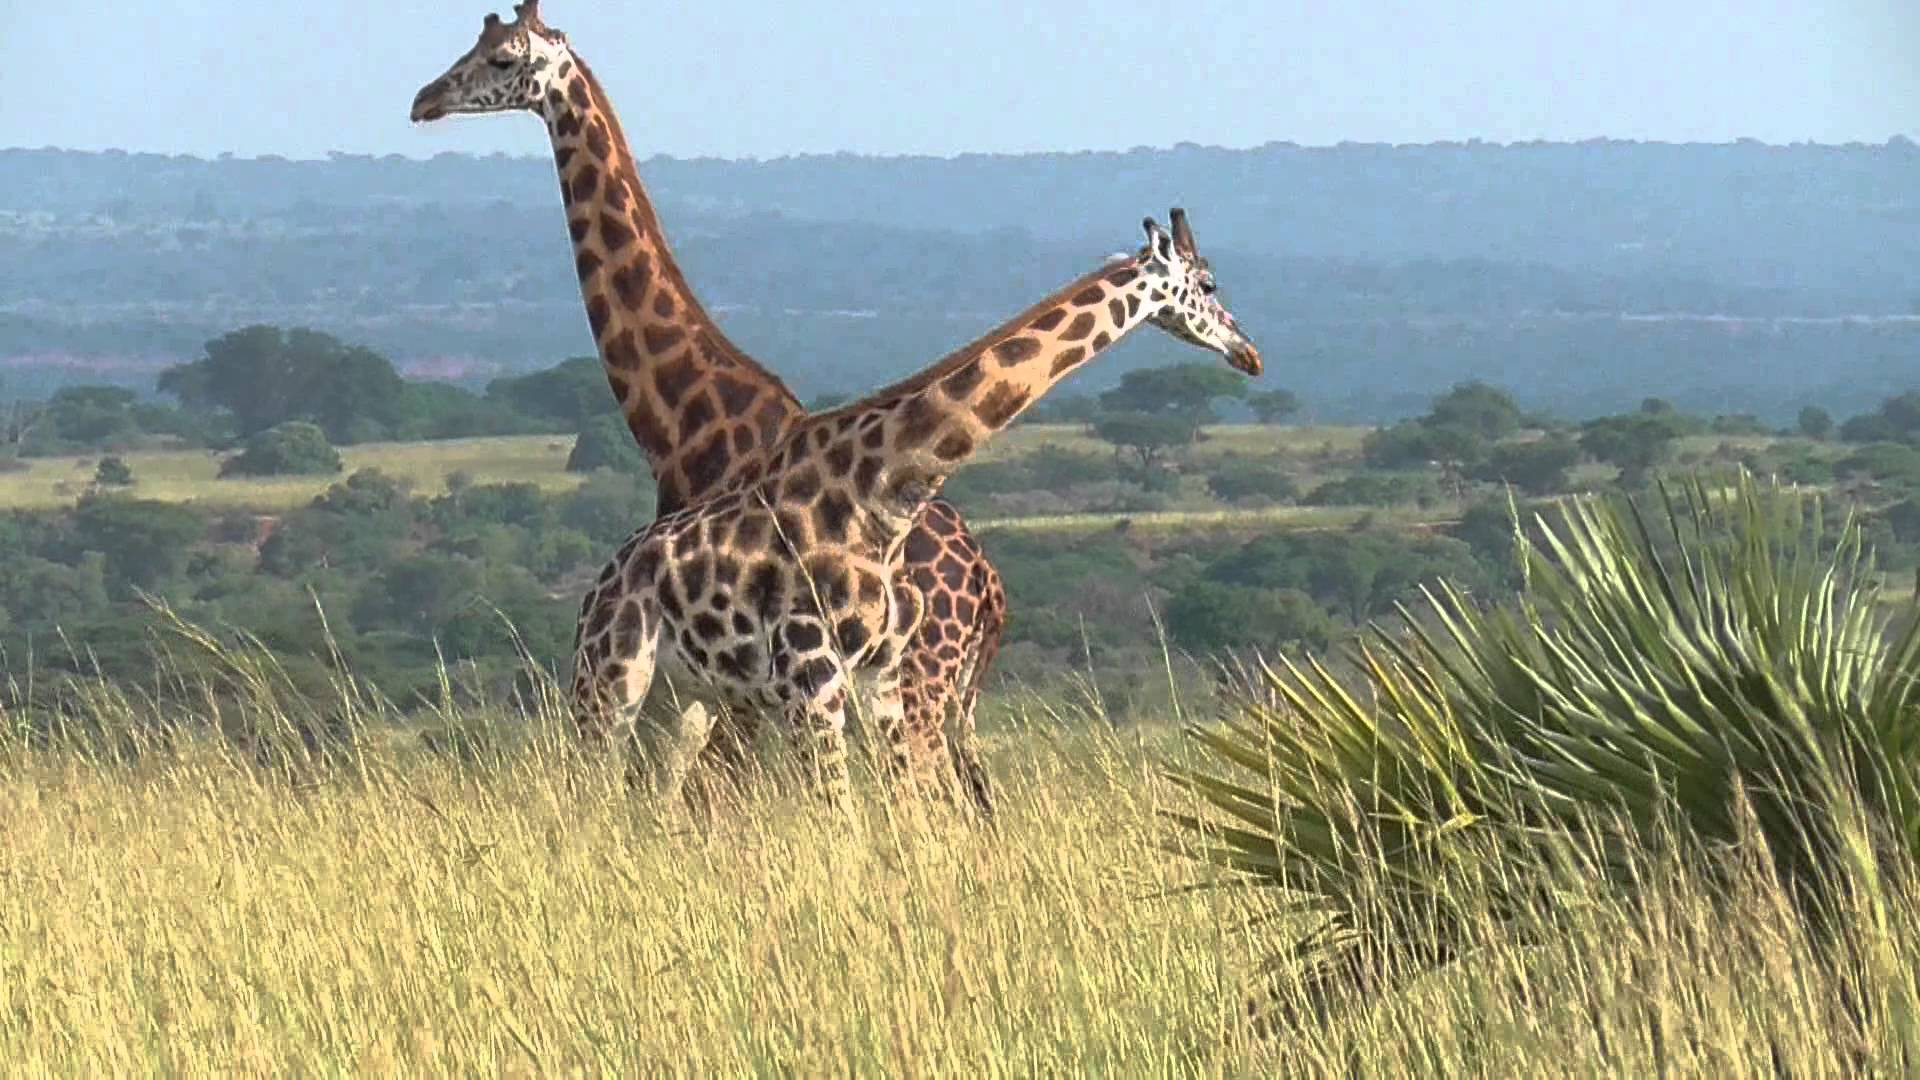 Day 2: An Early Morning Game Drive, Launch Cruise and Hiking to the top of the Murchison Falls